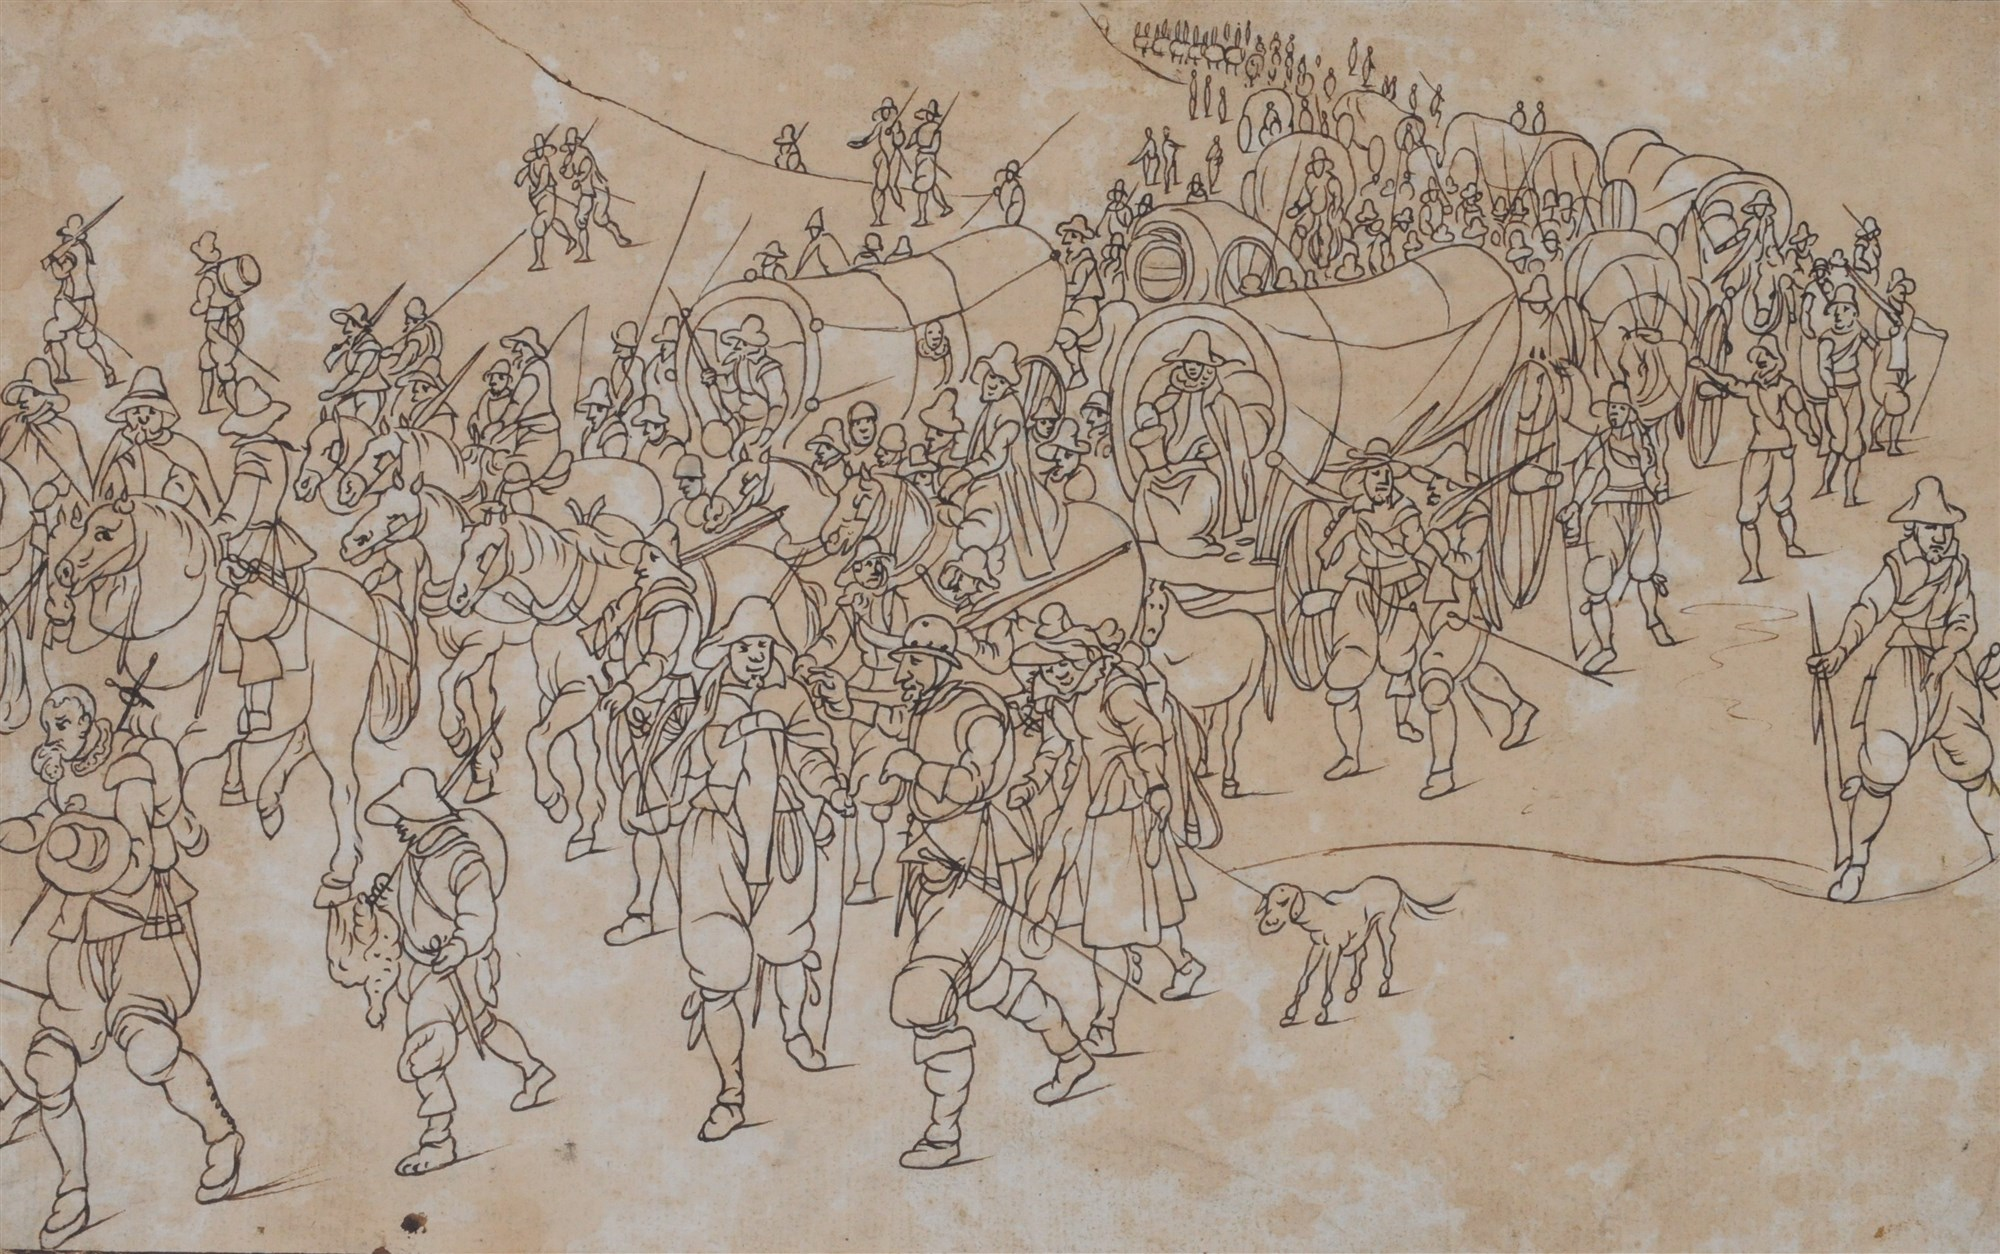 Lot 59 - Follower of Pieter Bruegel, Army on the March